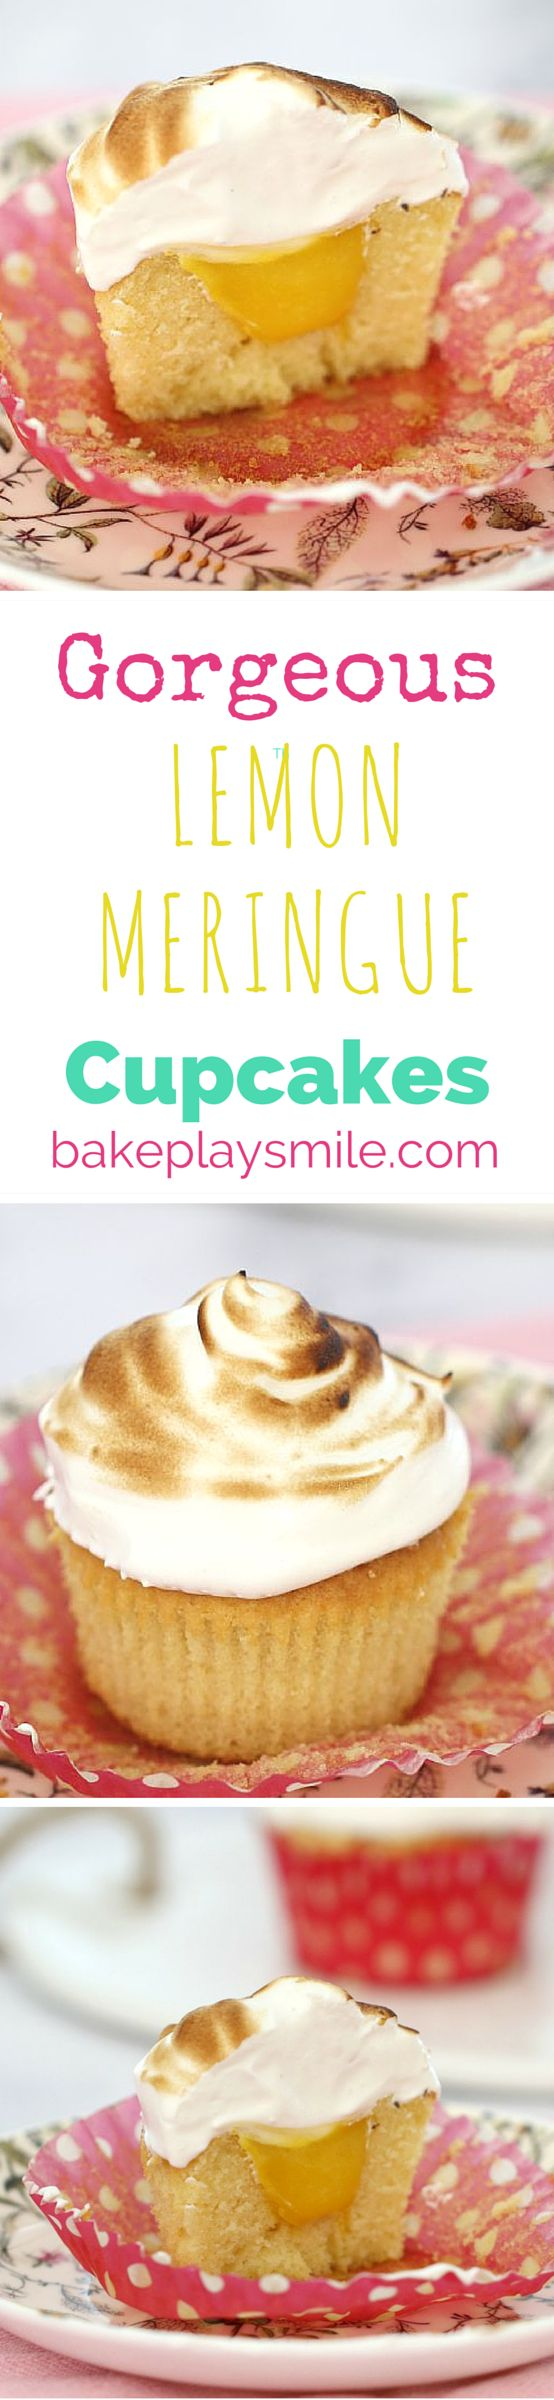 The very BEST Lemon Meringue Cupcakes ever! Perfect for high teas, baby showers or birthday parties. They look tricky, but they're actually really simple! | Bake Play Smile